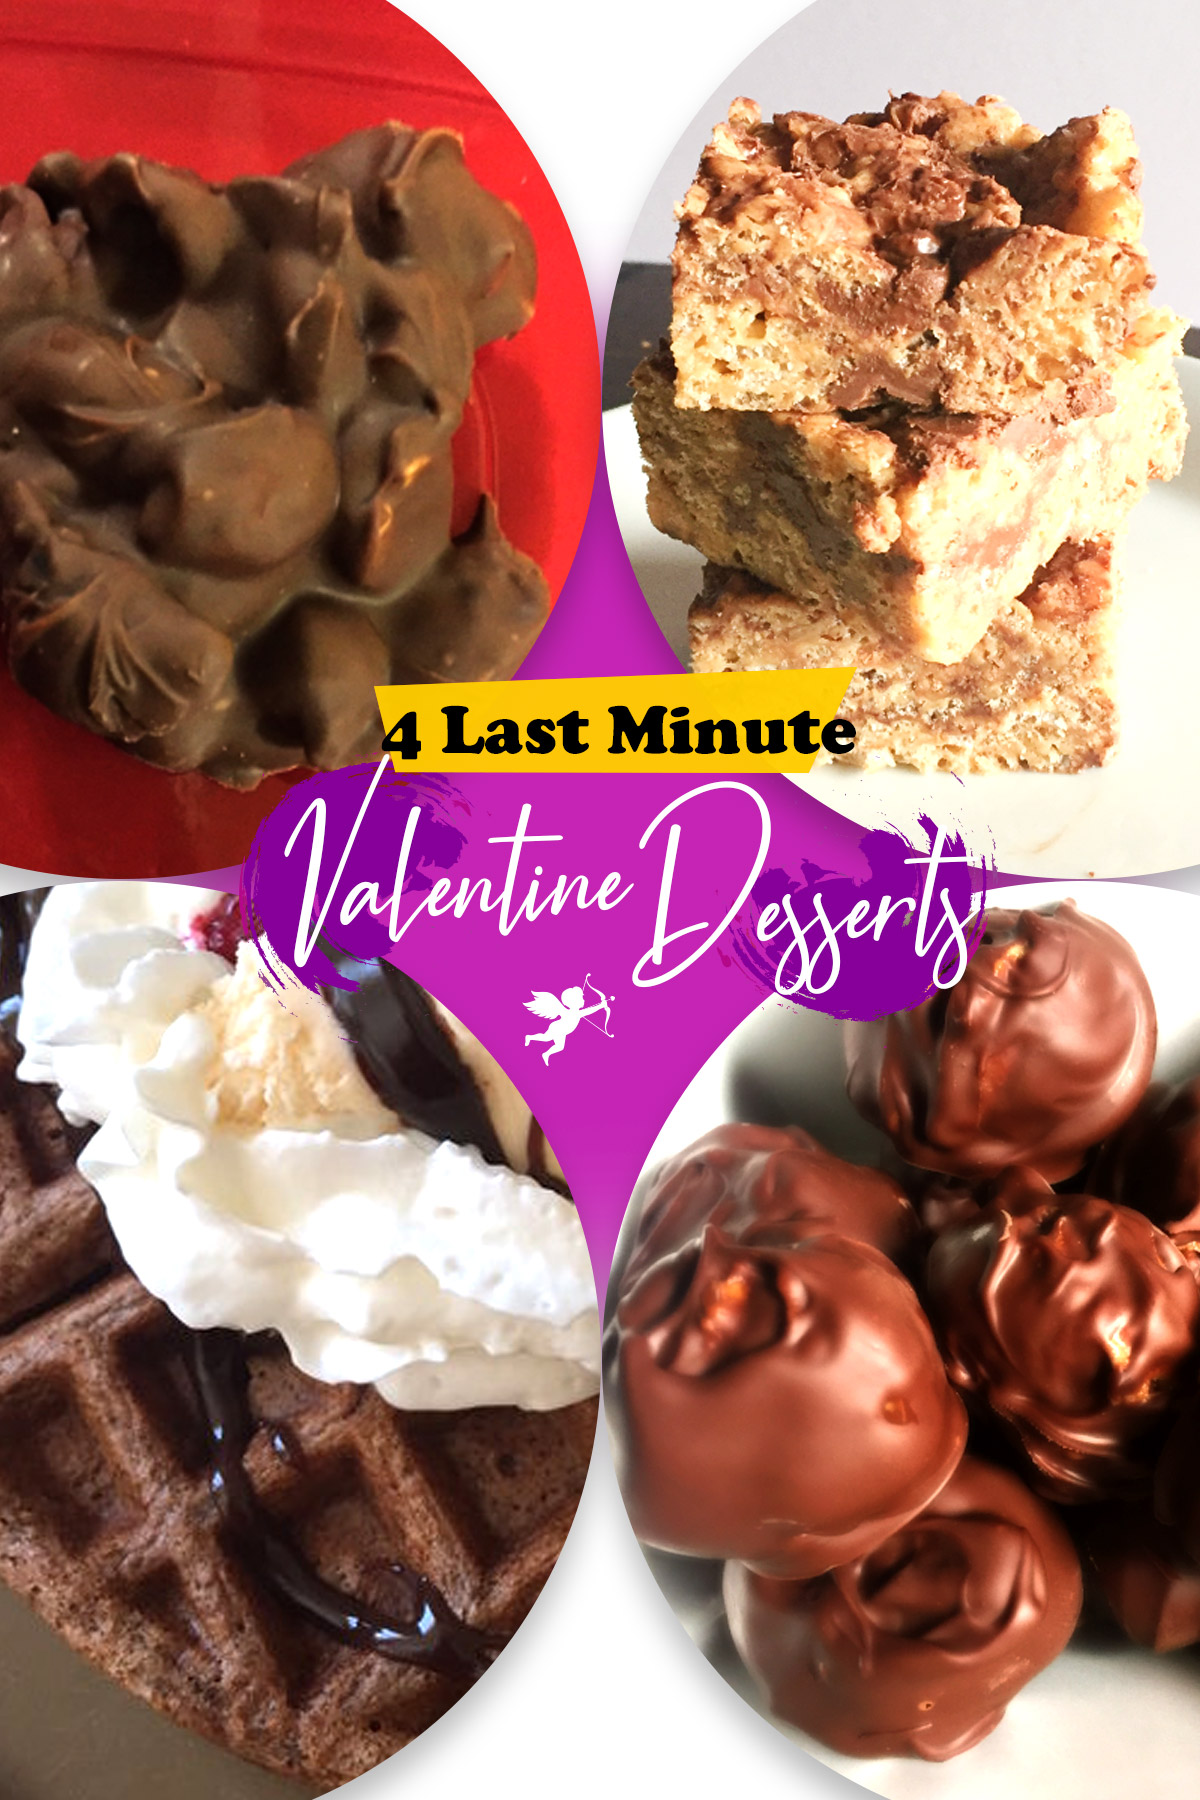 Even though today is Valentine's Day, you can easily make one of these four sweet treats to surprise your special someone.